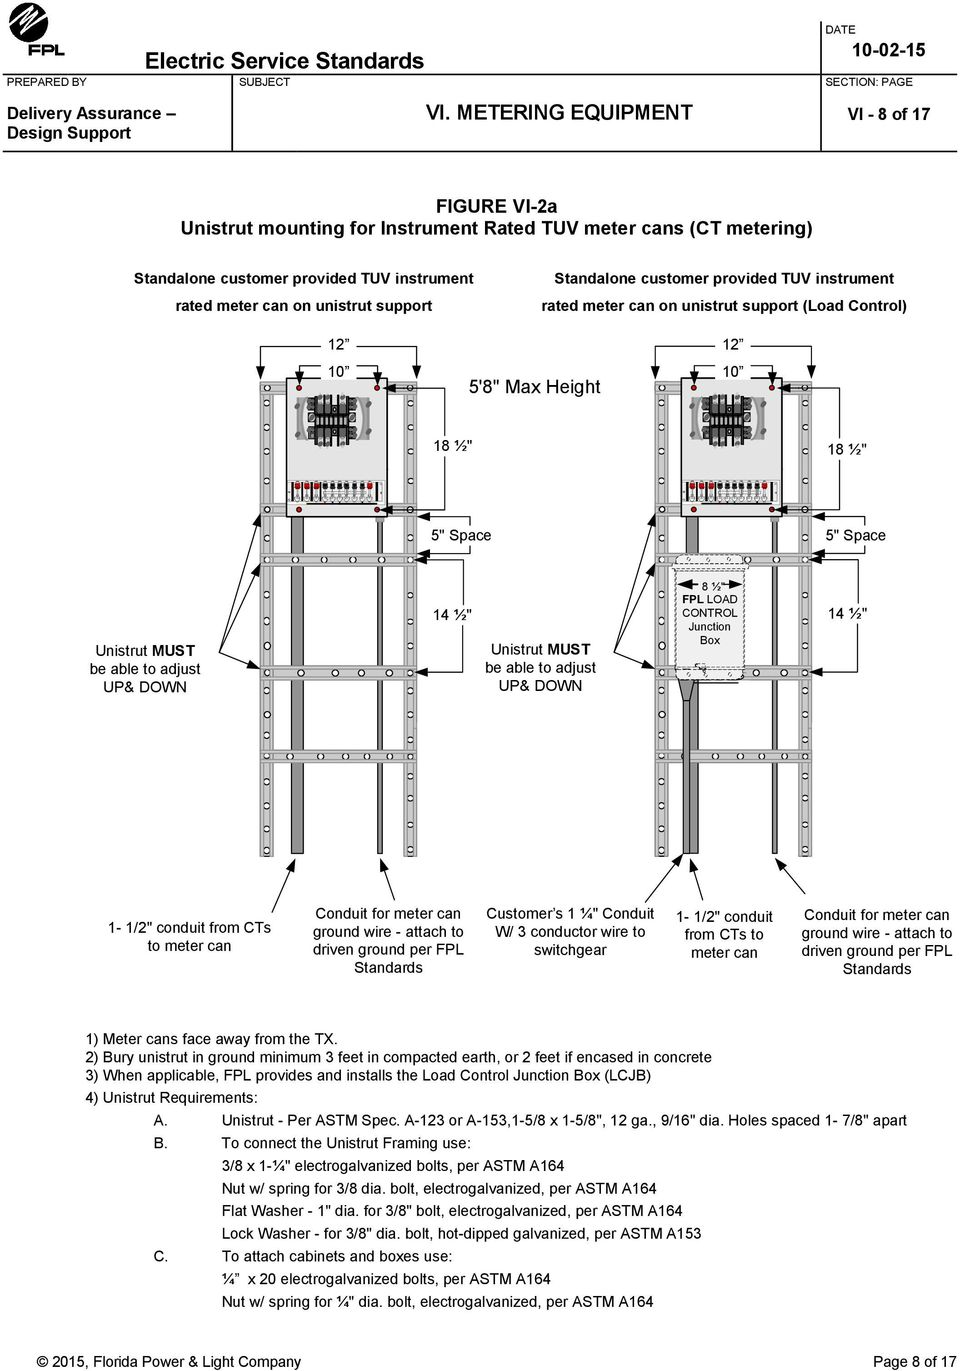 Electric Service Standards Pdf Diagram For Meter Base Wiring With Cts Be Able To Adjust Up Down 8 Fpl Load Control Junction Box 14